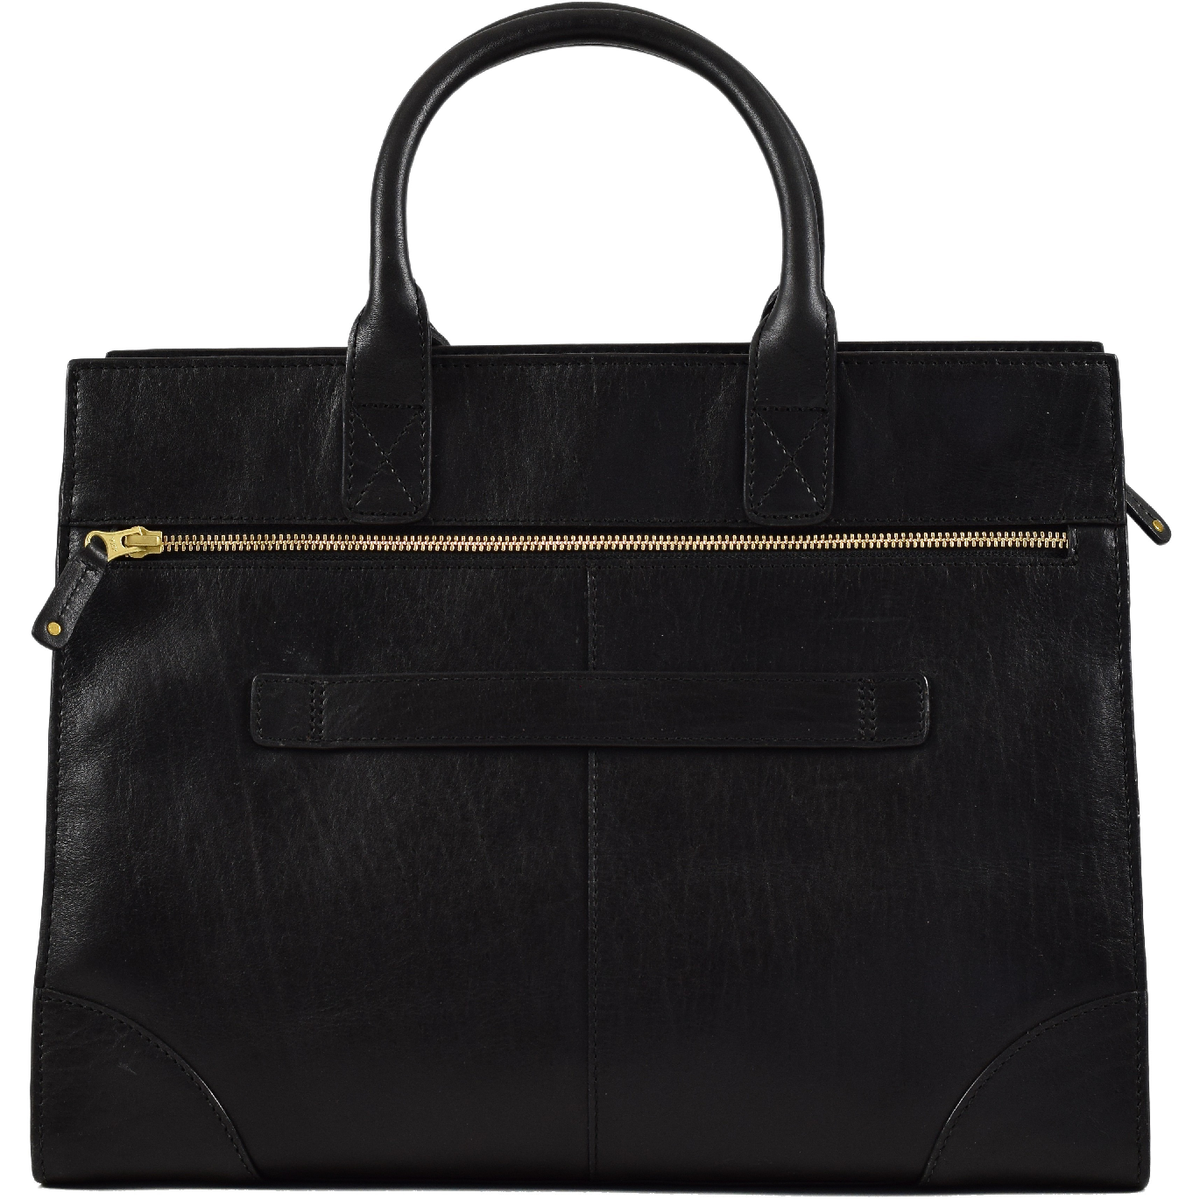 Limited Courtney East/West Tote